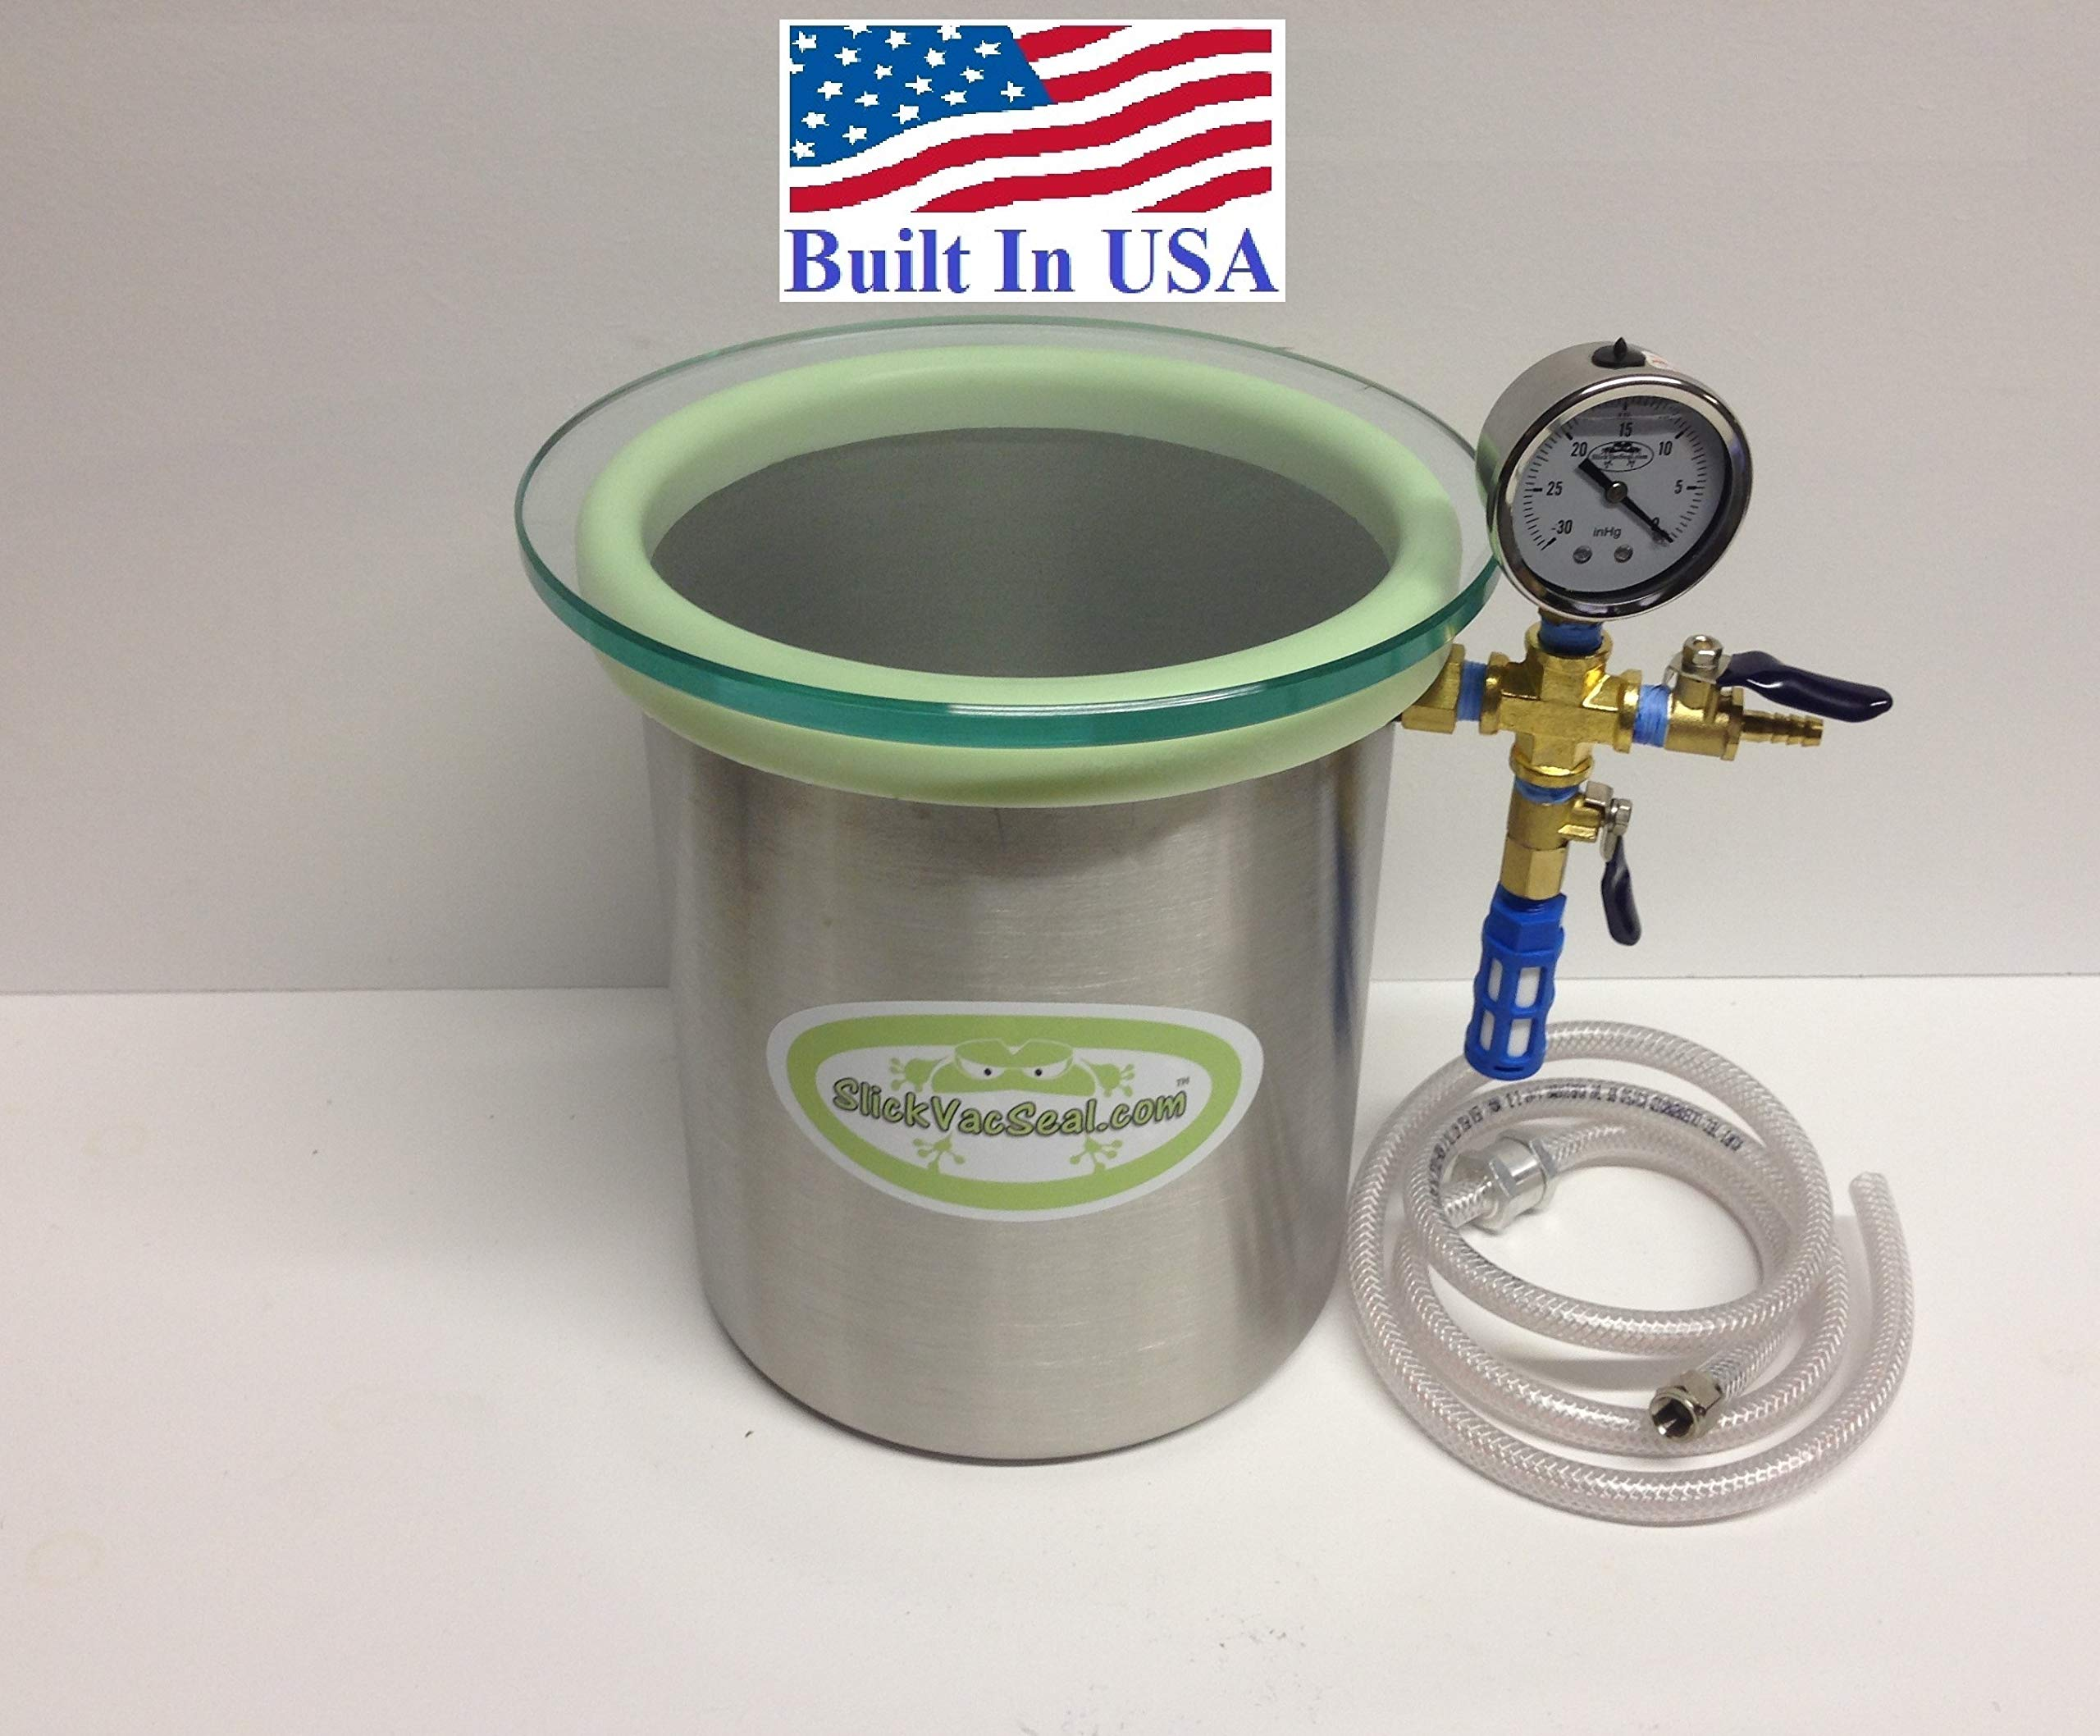 1.5 Gallon SlickWoodVac Stainless Steel Vacuum Chamber by Slickvacseal